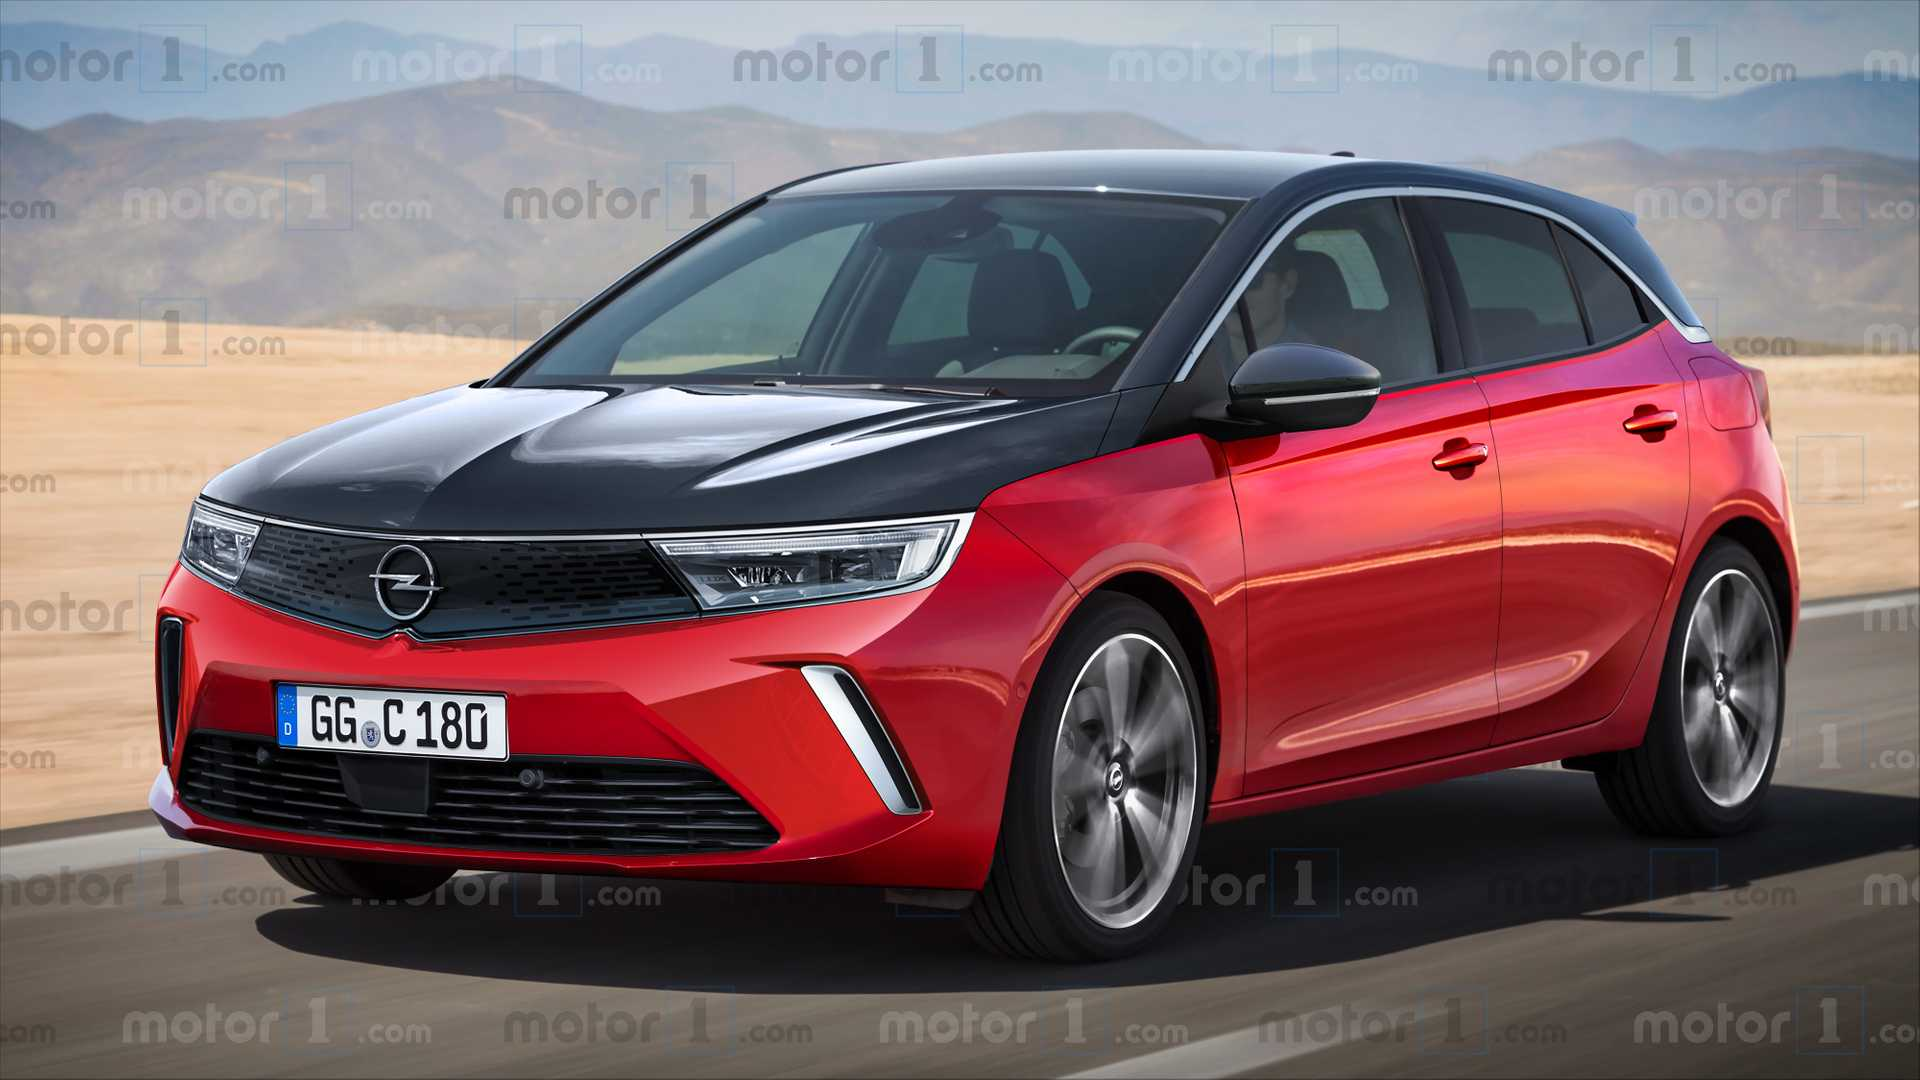 2021 - [Opel] Astra L [OV51/52] - Page 2 Opel-astra-2021-als-rendering